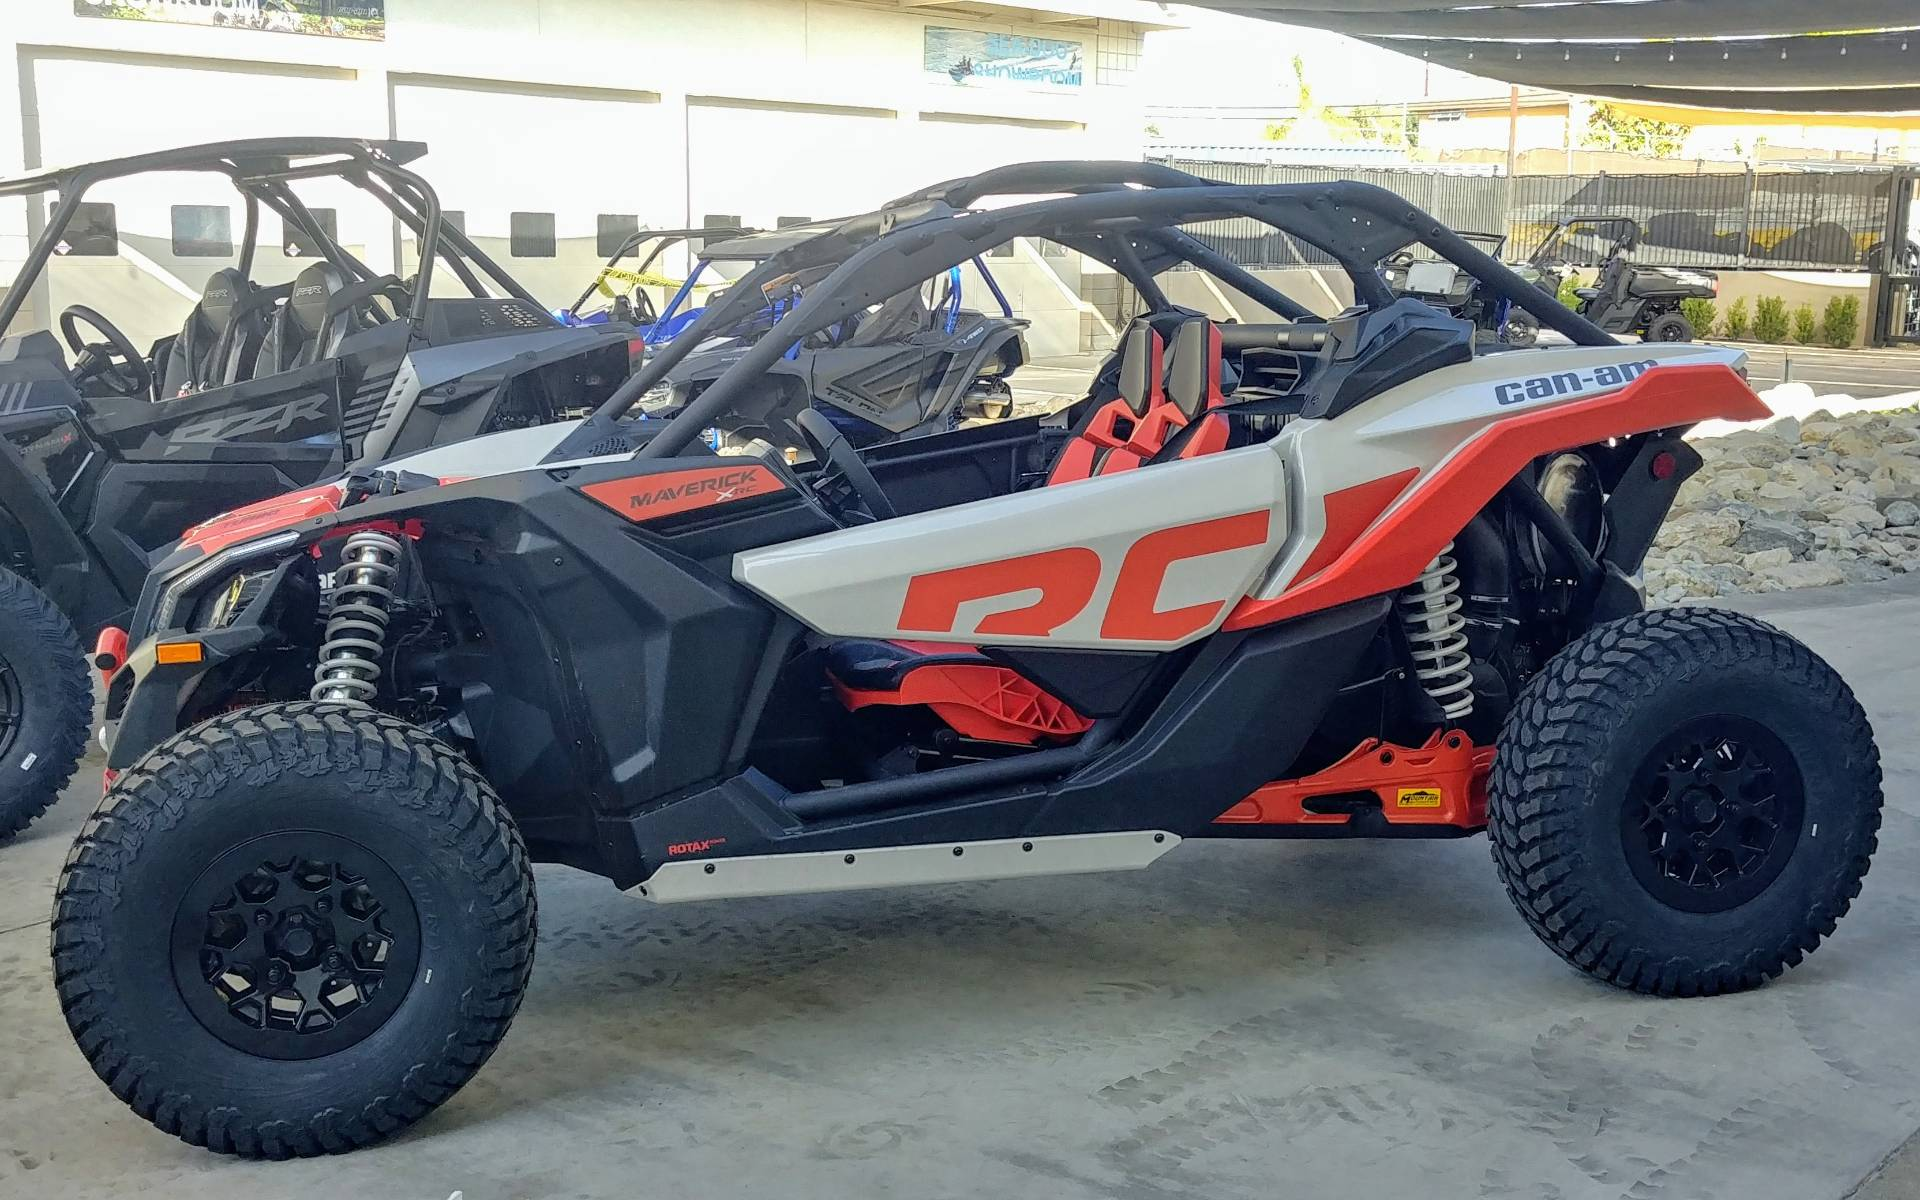 2021 Can-Am Maverick X3 X RC Turbo in Ontario, California - Photo 4